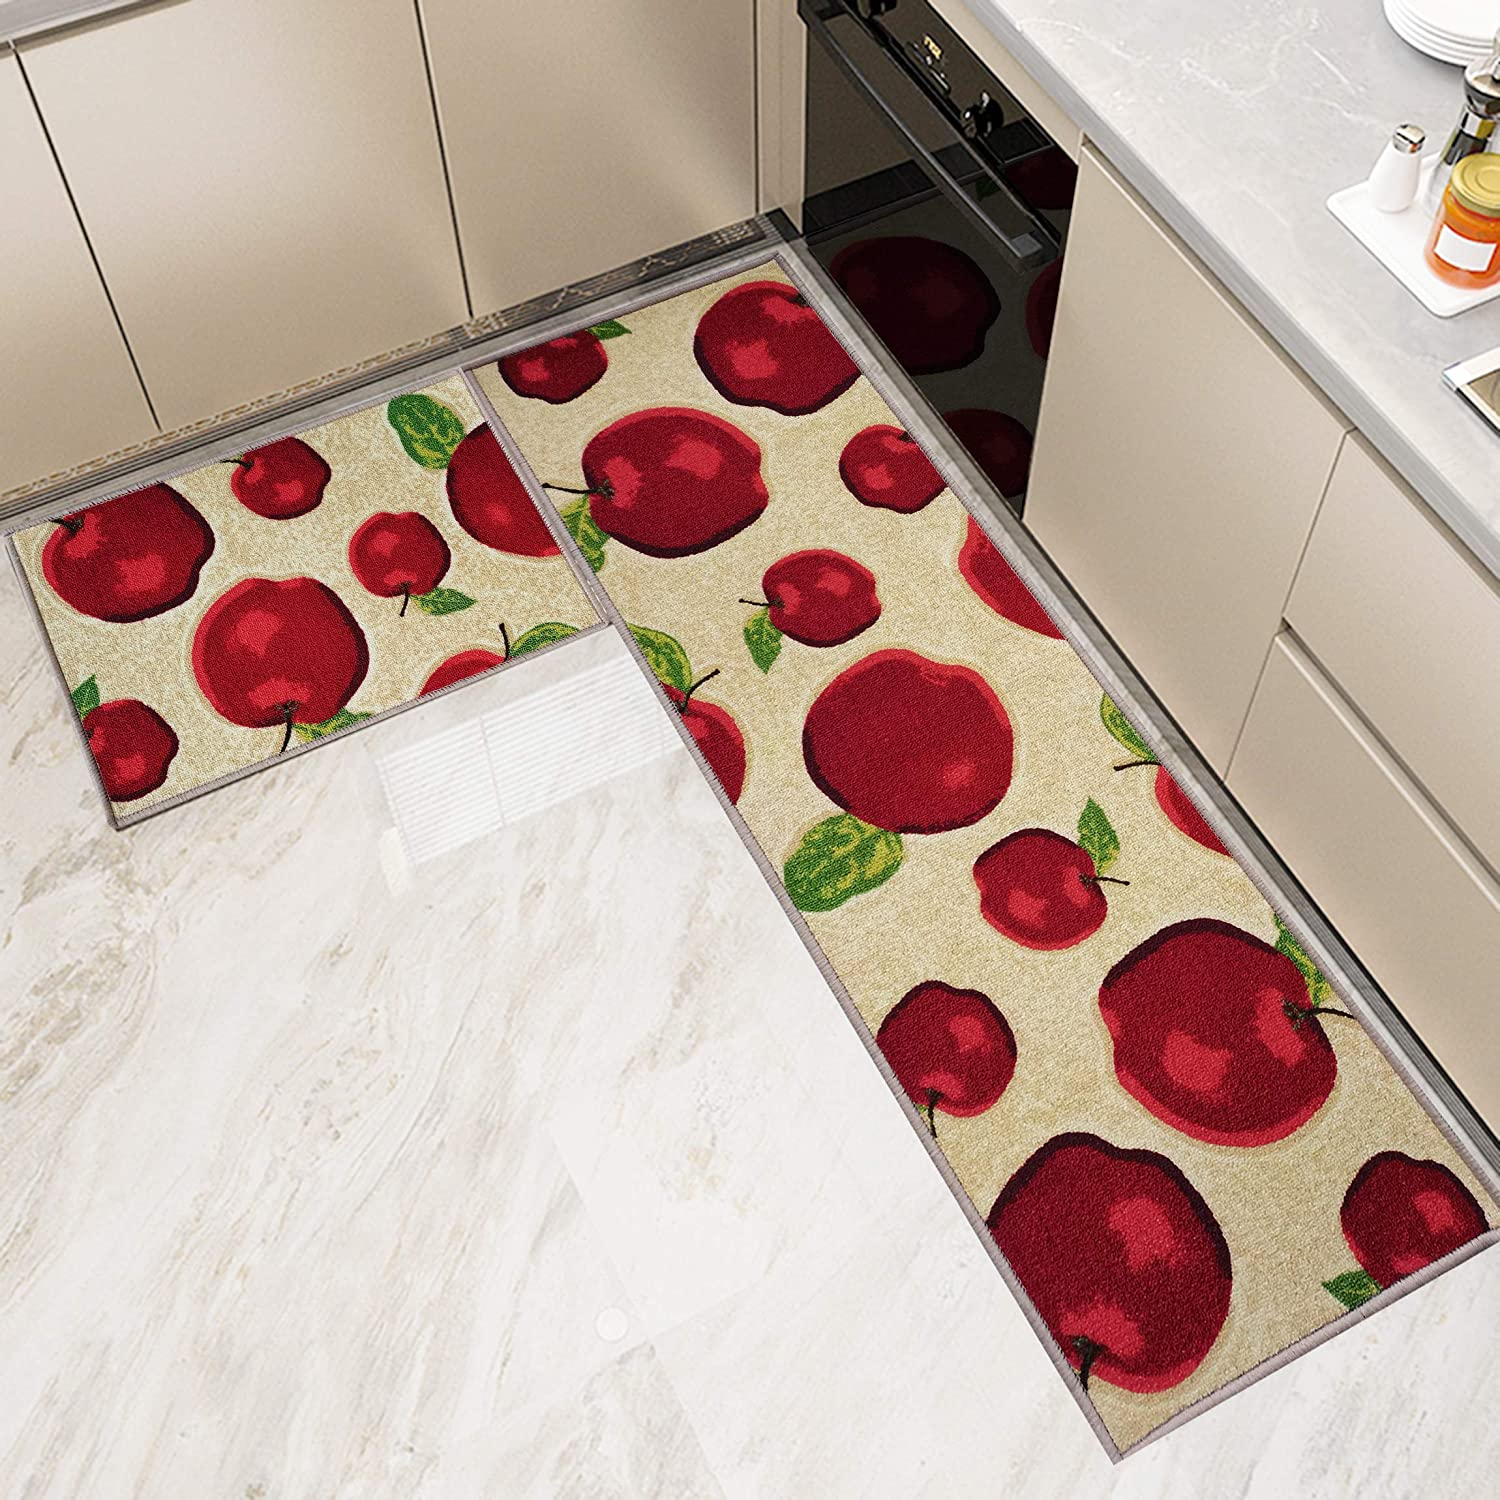 Kitchen Rugs and Mats Non Skid Washable Set 2 PCS, Water Absorb Microfiber Standing Kitchen Area Decor Mats and Rugs Rubber Backing Soft Carpet Doormat Runner for Home Floor, Apple